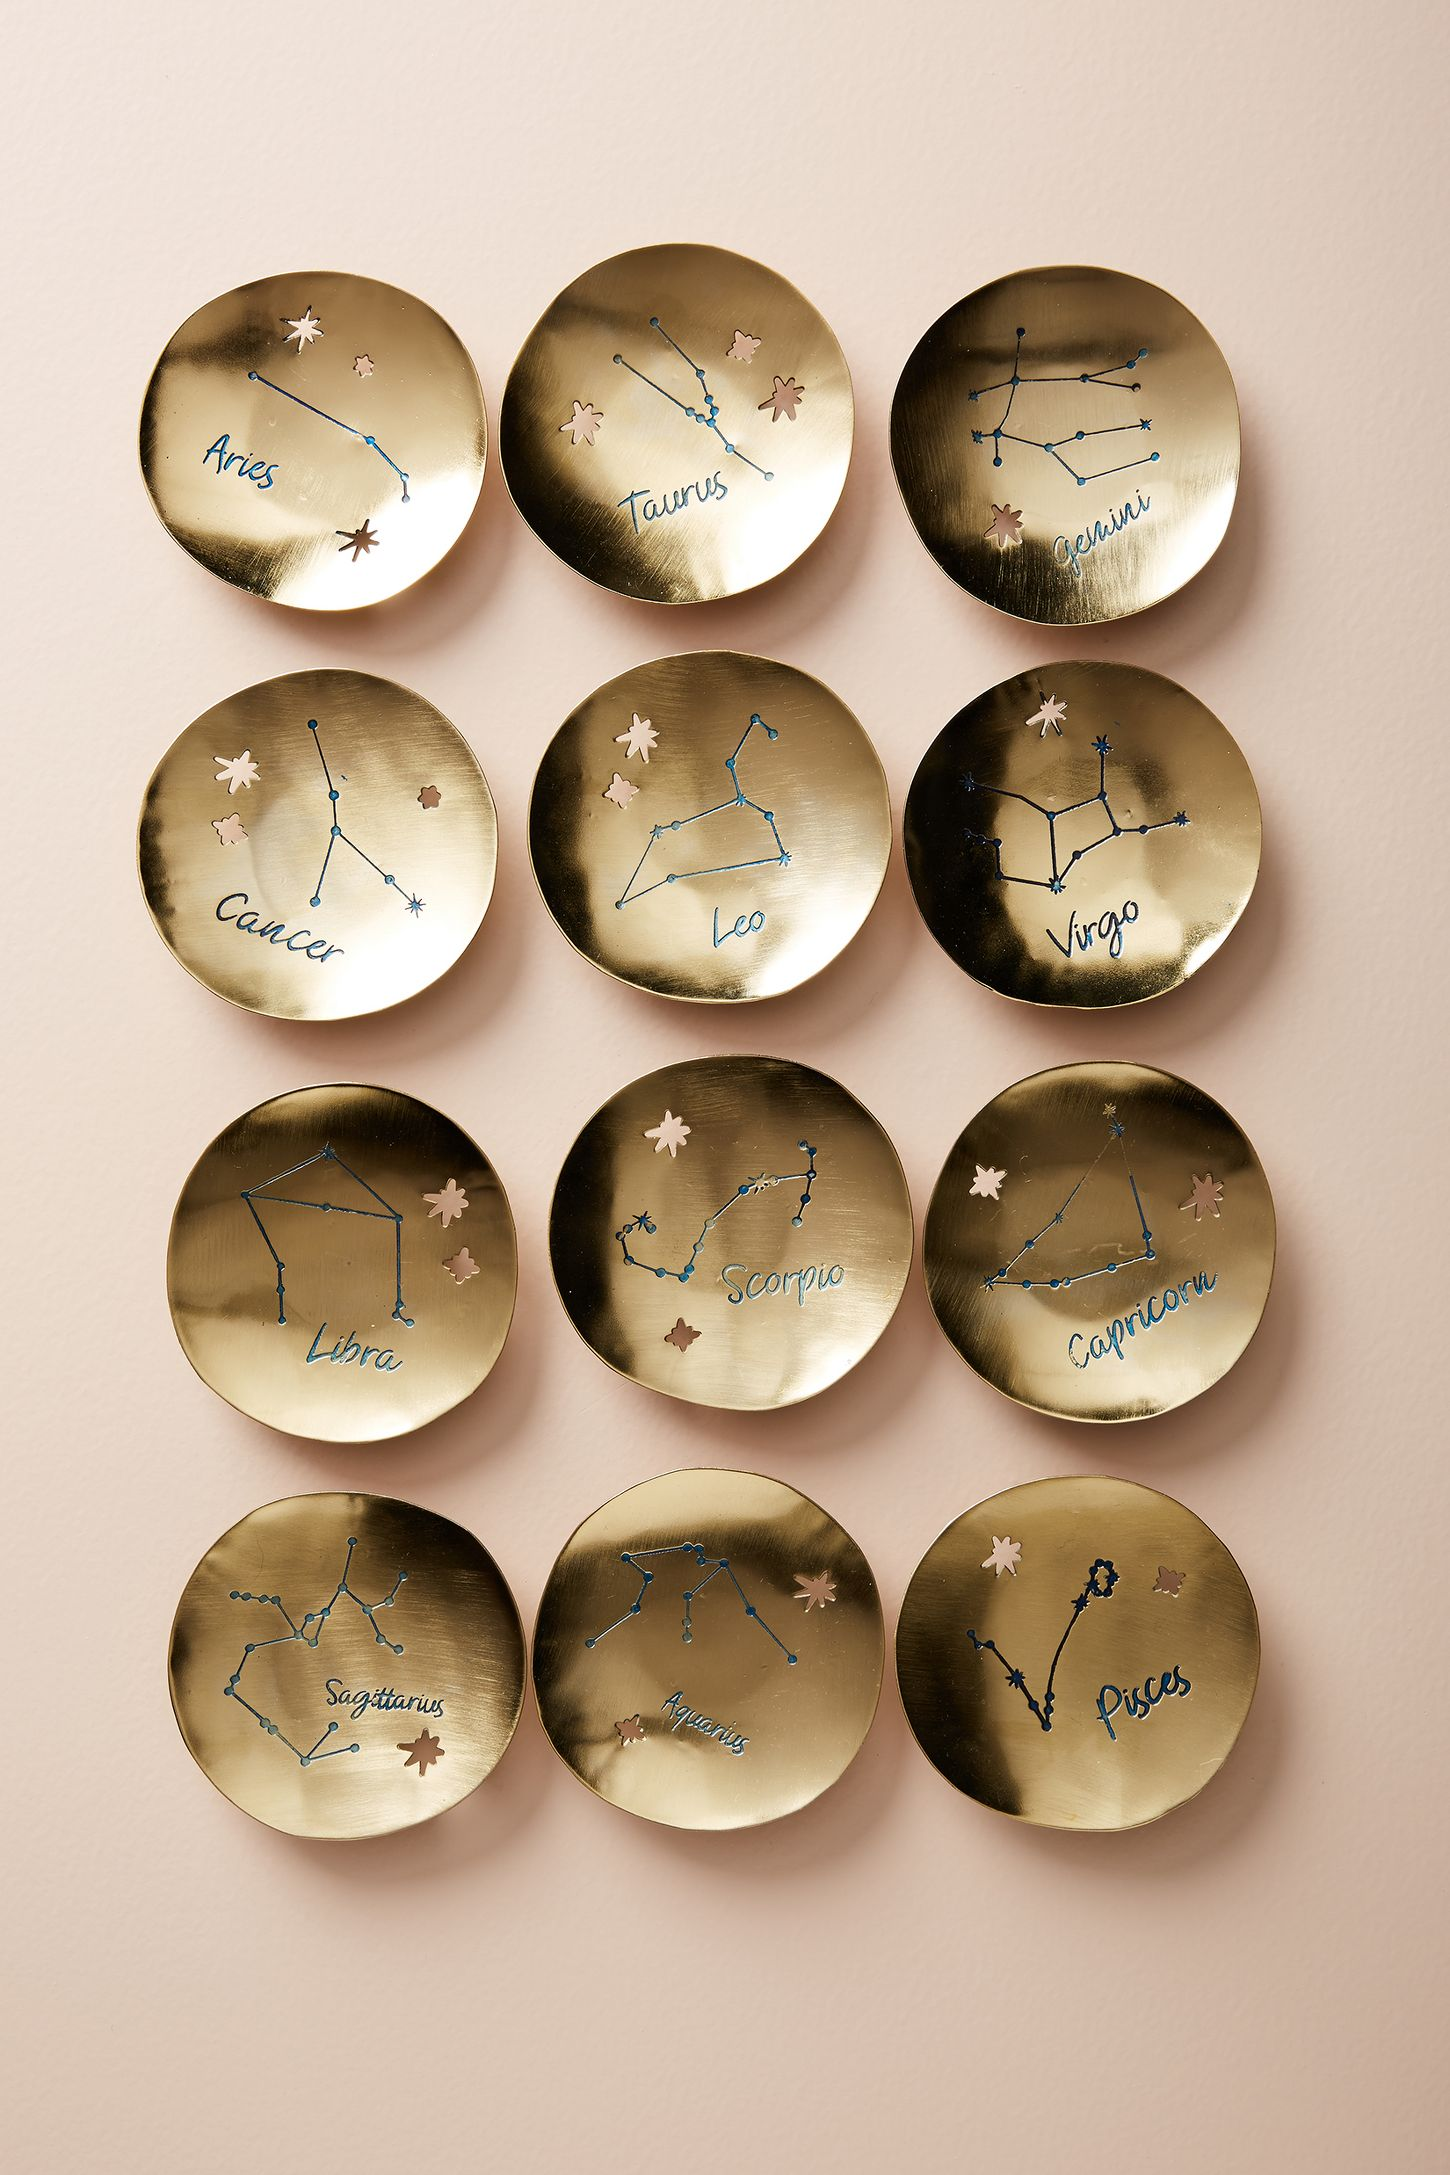 Wall Plates Decor Online Stunning Furniture & Home Decor On Sale  Anthropologie Design Ideas